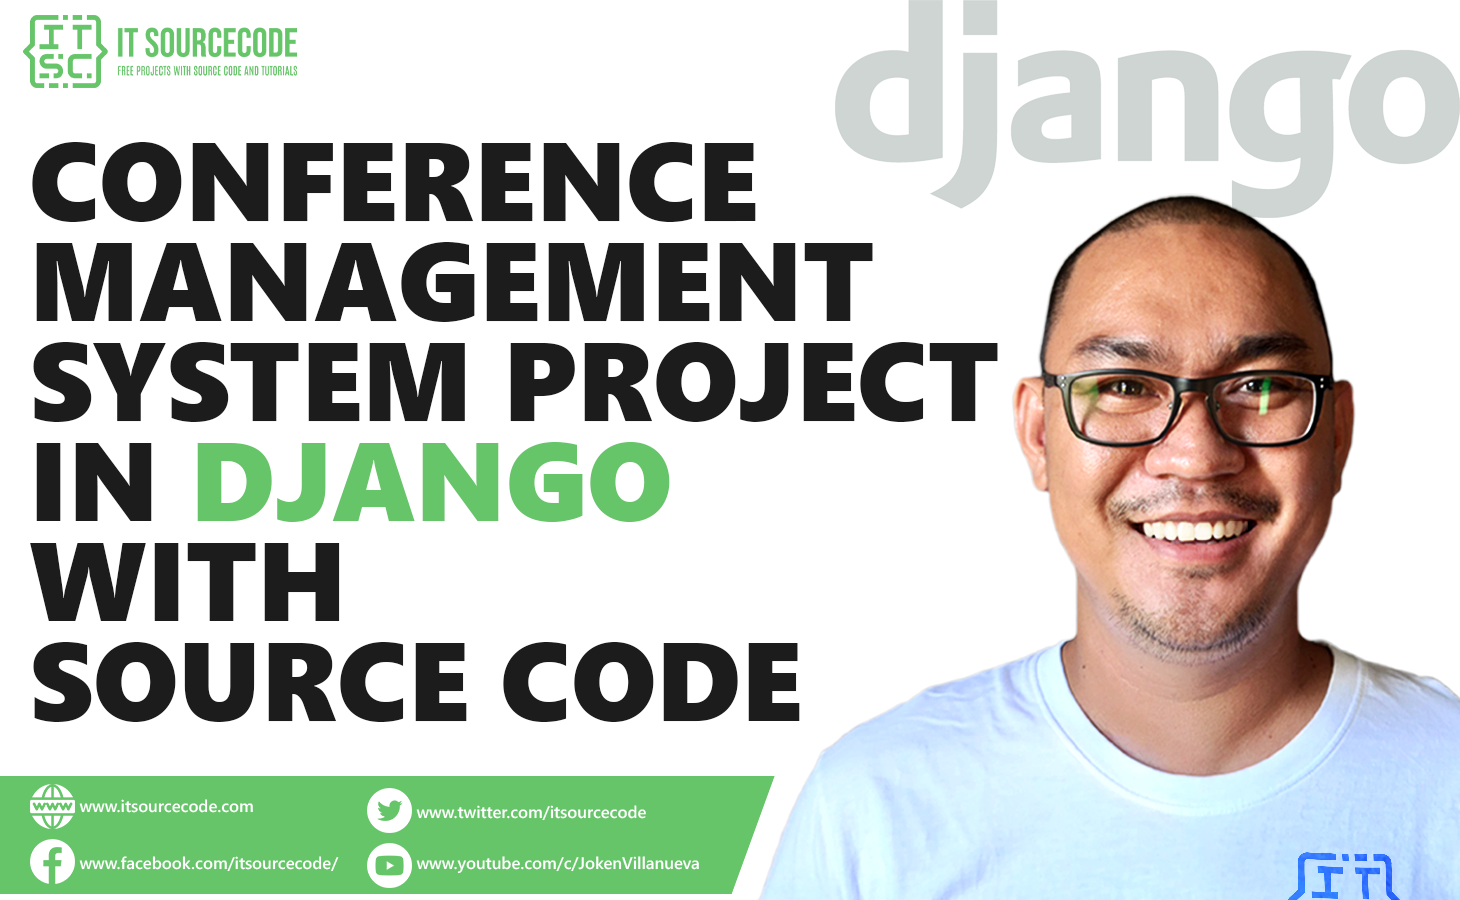 Conference Management System Project in Django with Source Code